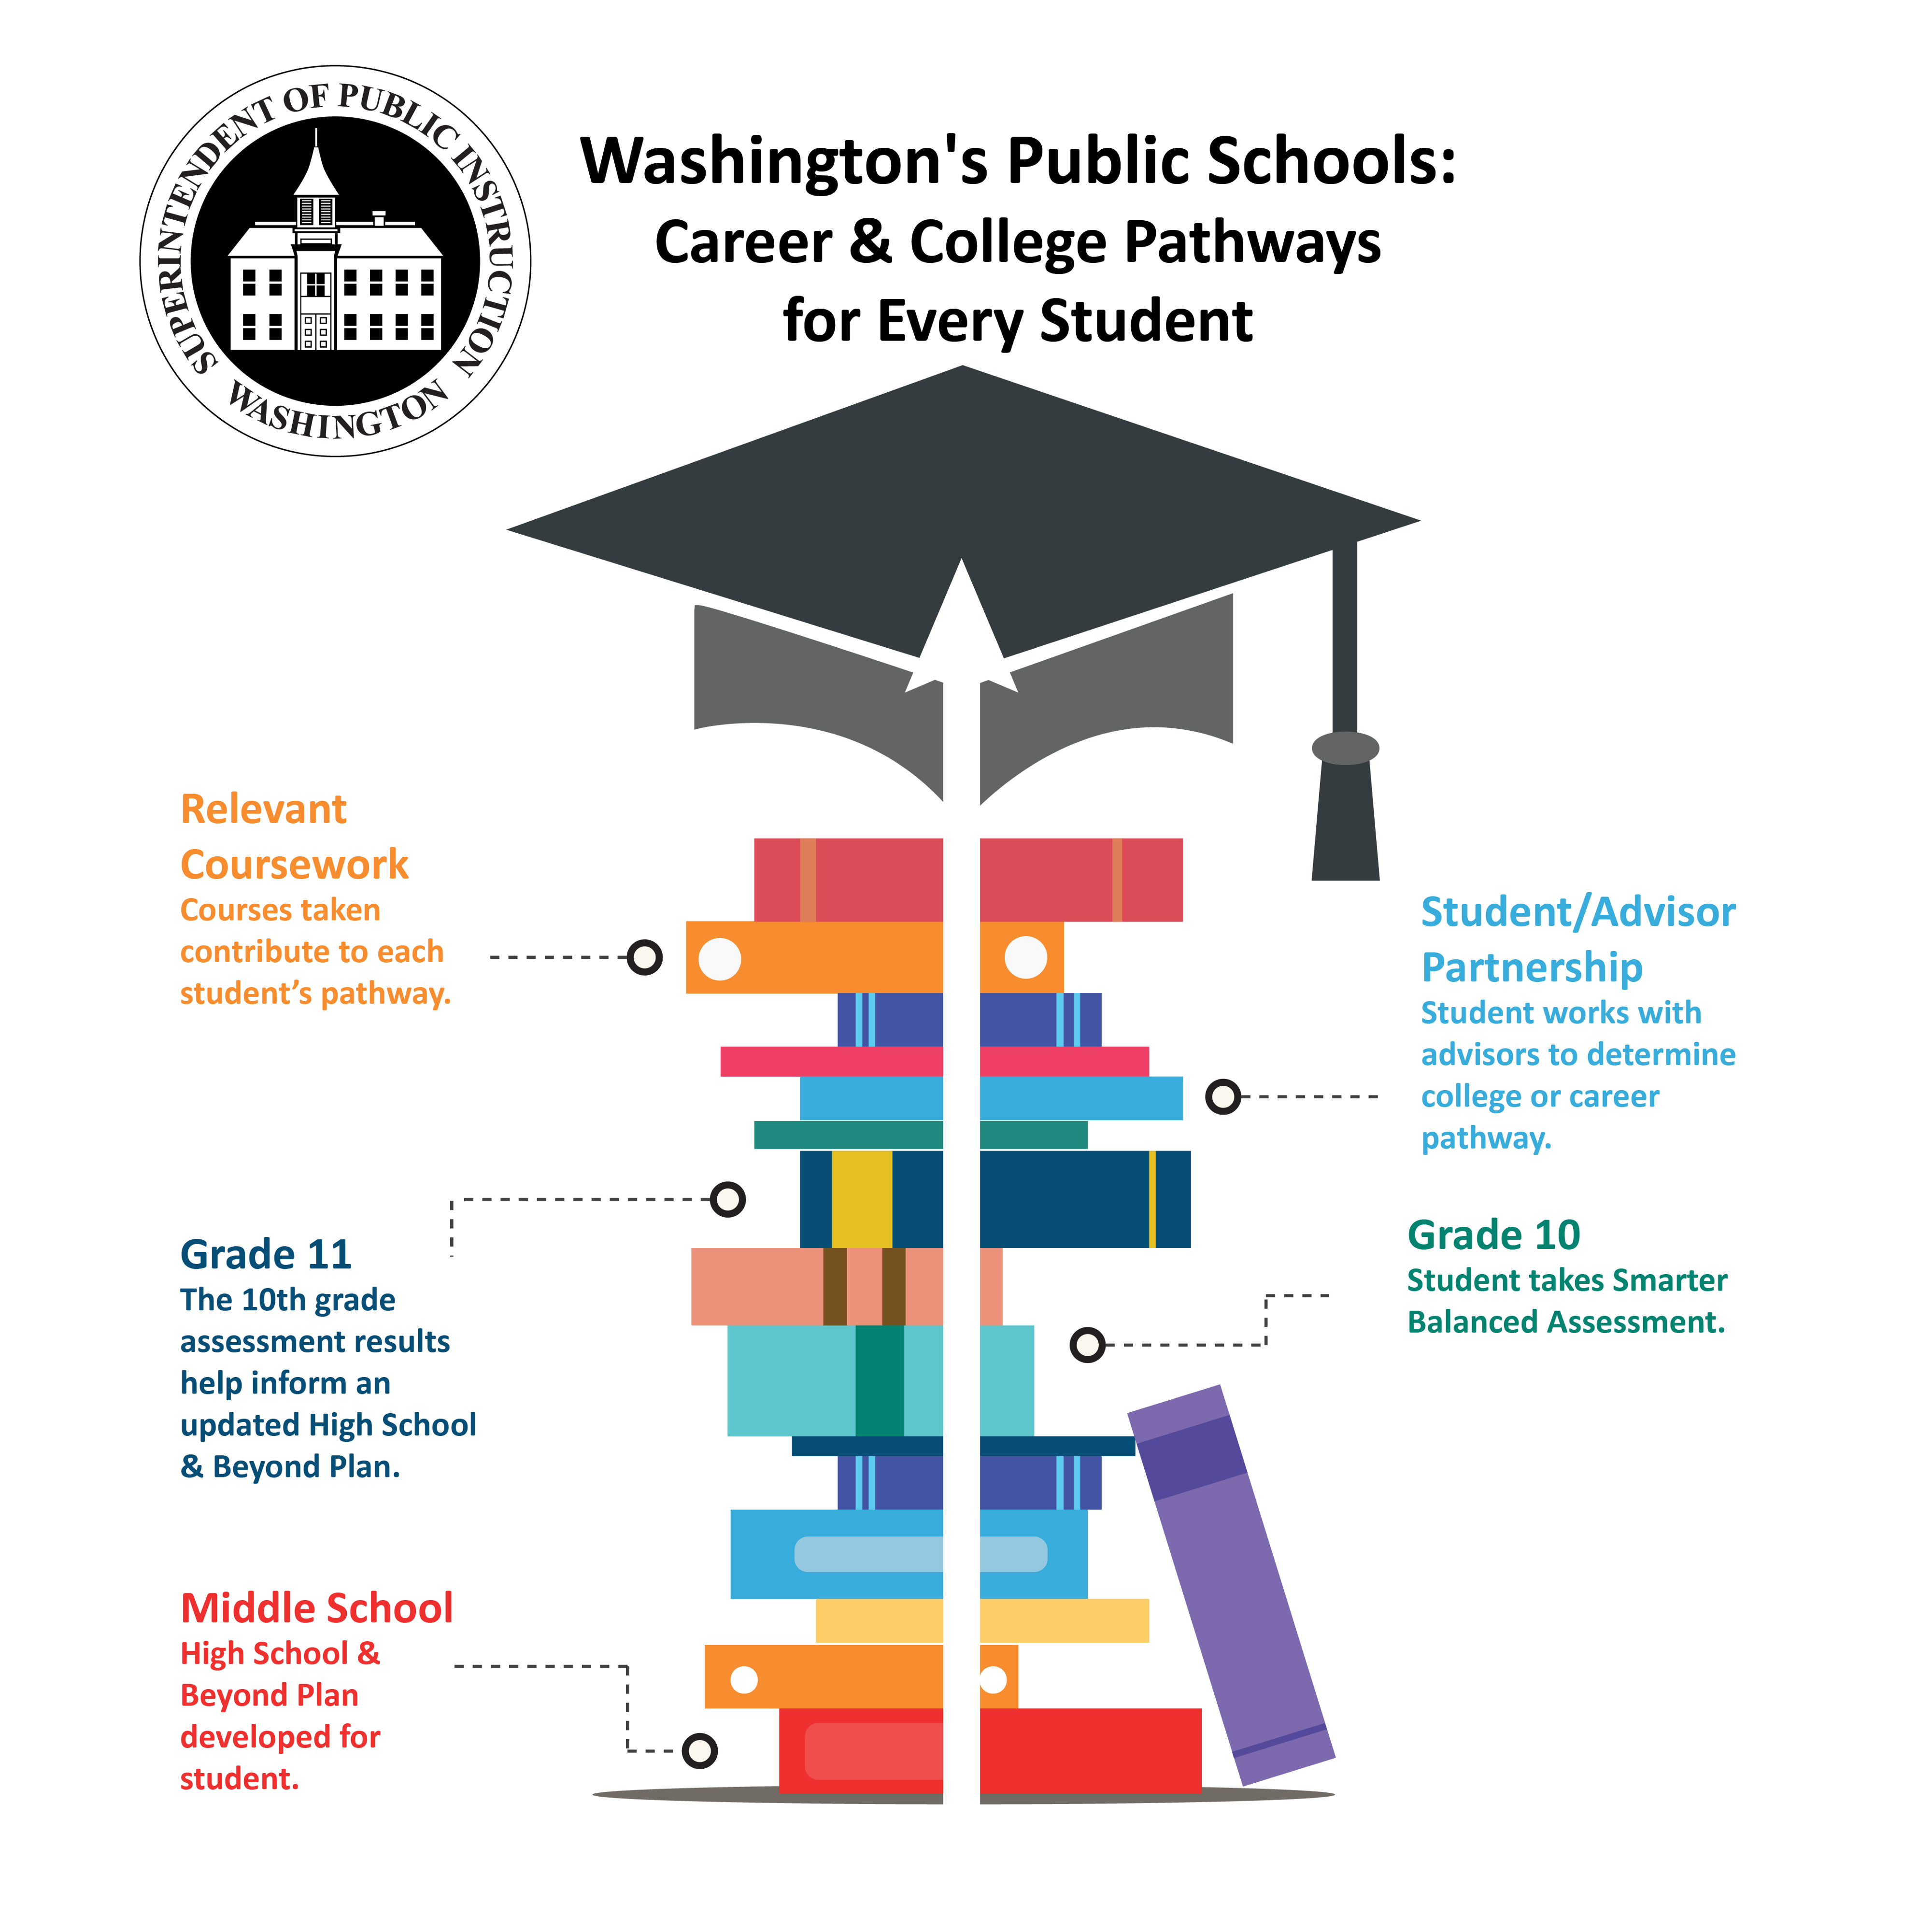 New Assessment Bill Will Provide More Pathways To High School Graduation By The Office Of Superintendent Of Public Instruction Office Of Superintendent Of Public Instruction Medium Real property tax bills due dates and delayed bills. medium